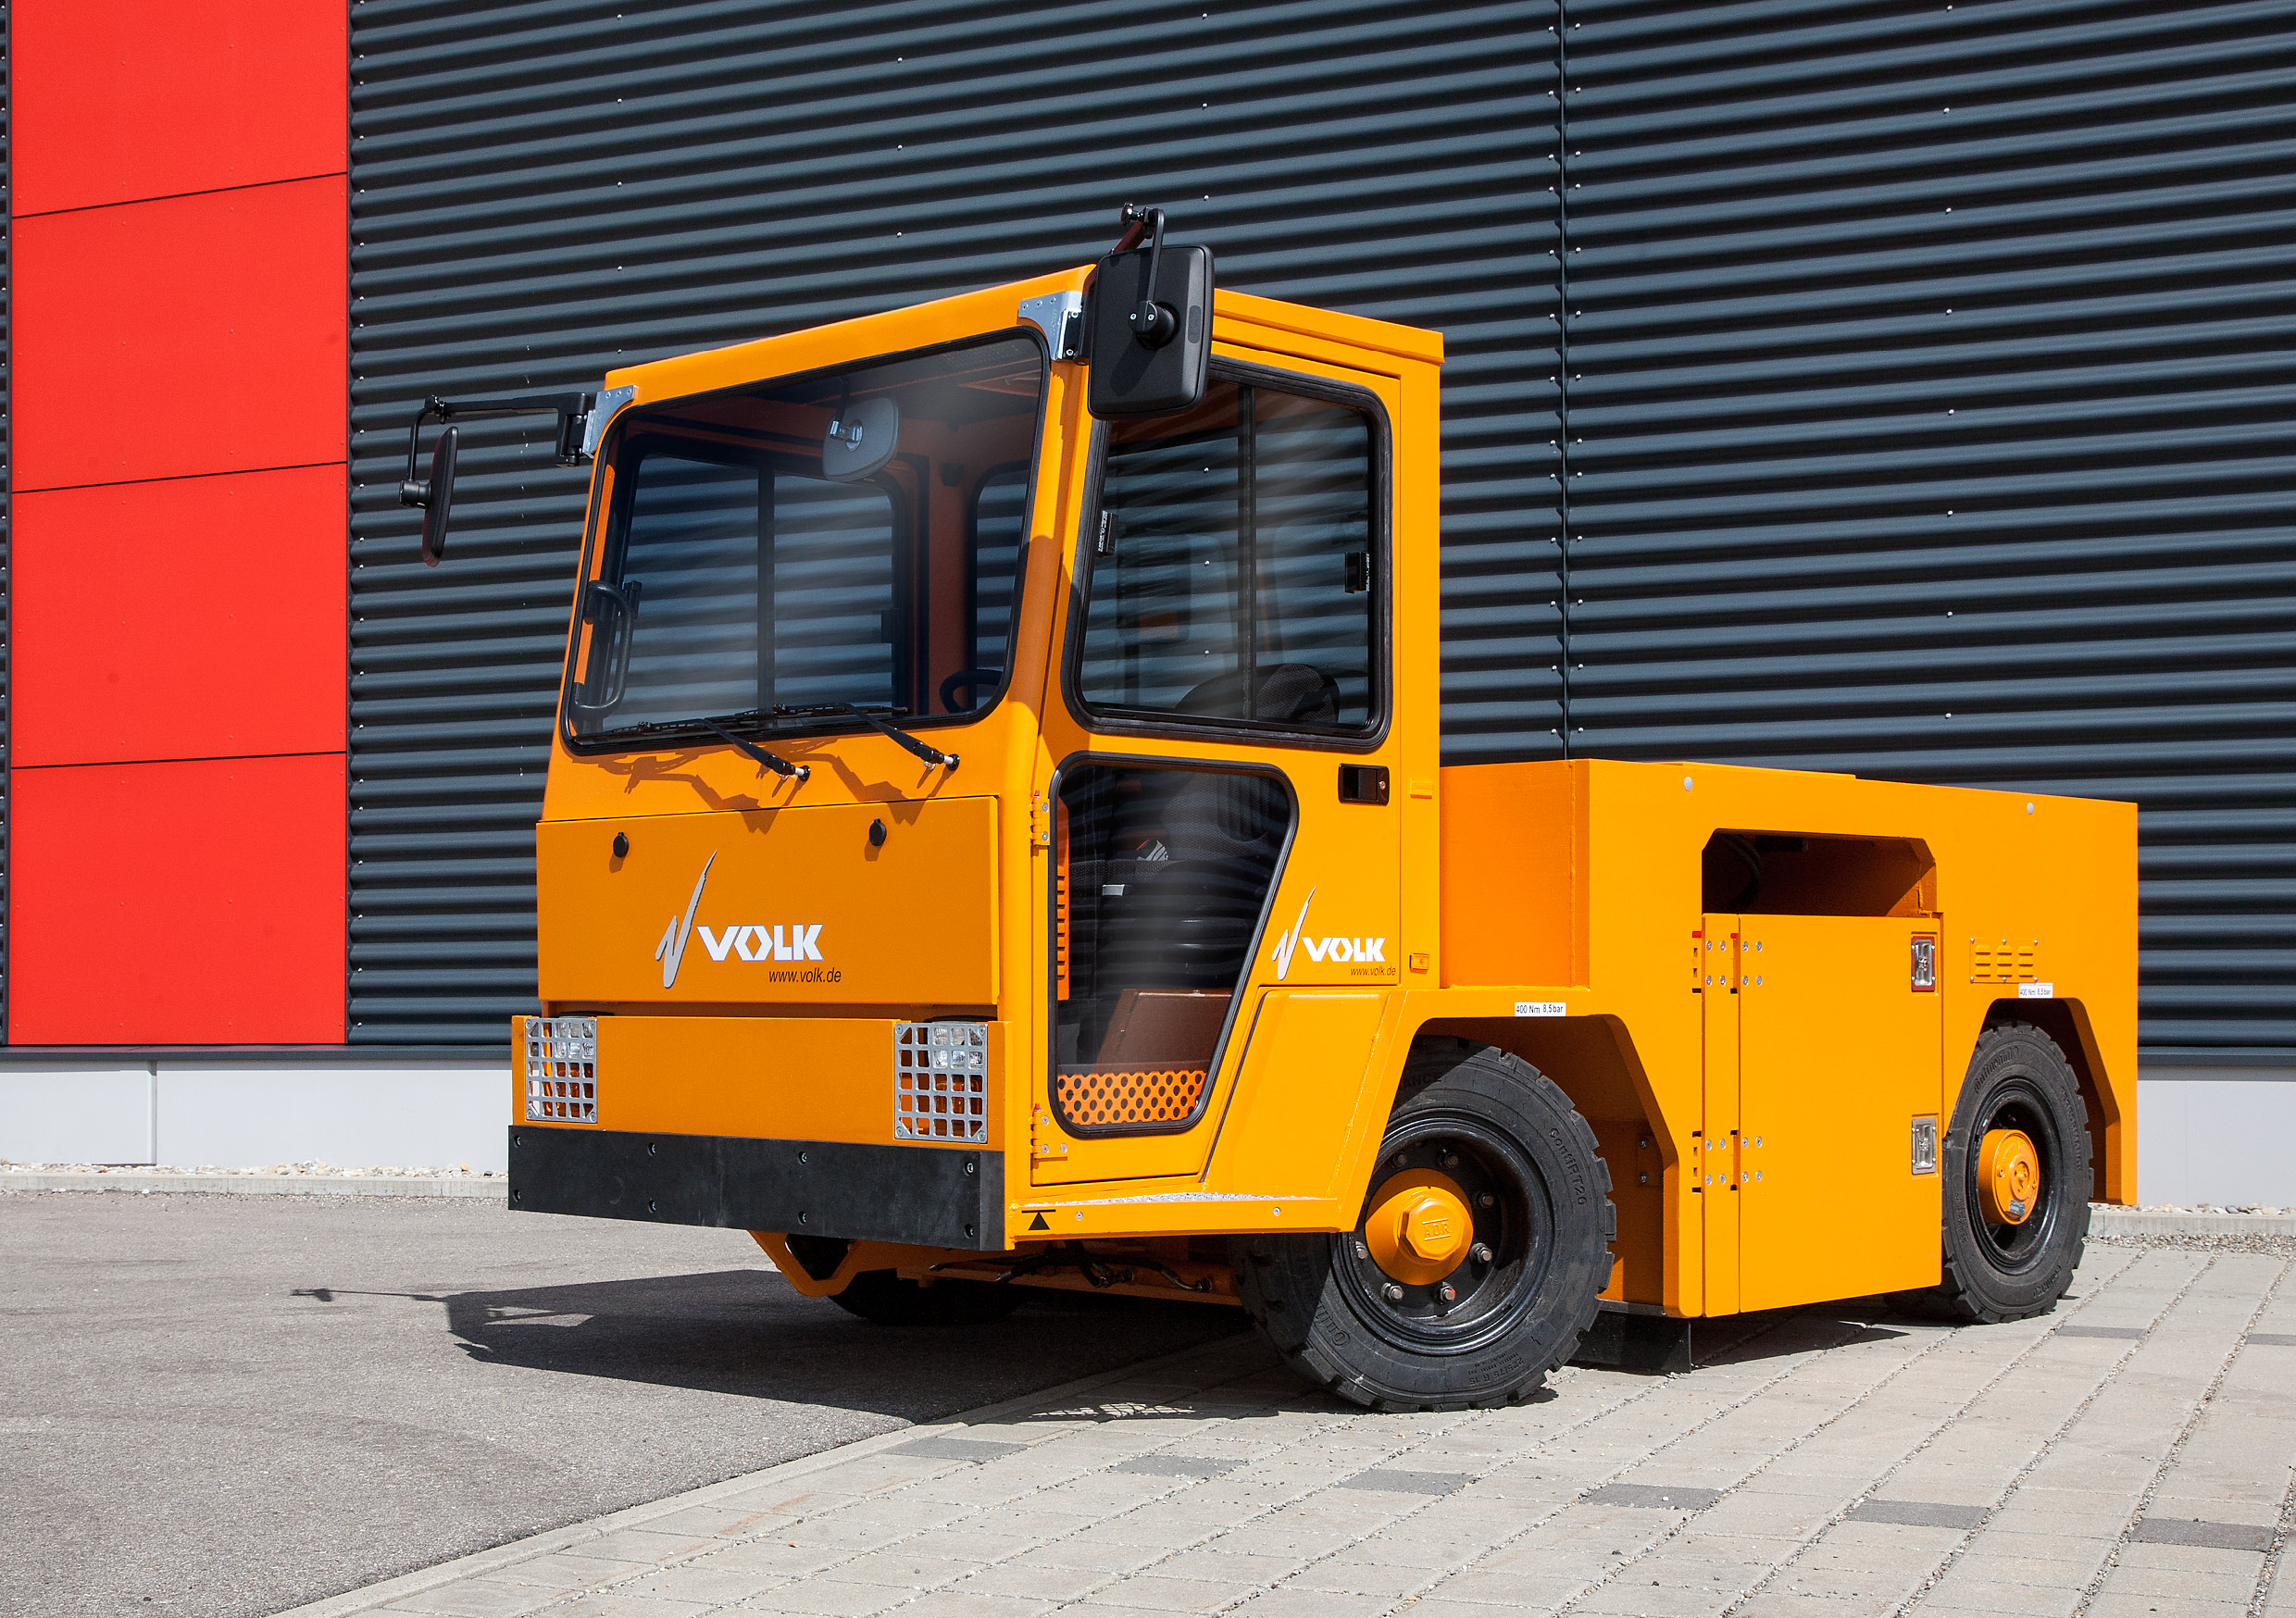 VOLK_Electric-tow-tractor_EFZ-80Nv2